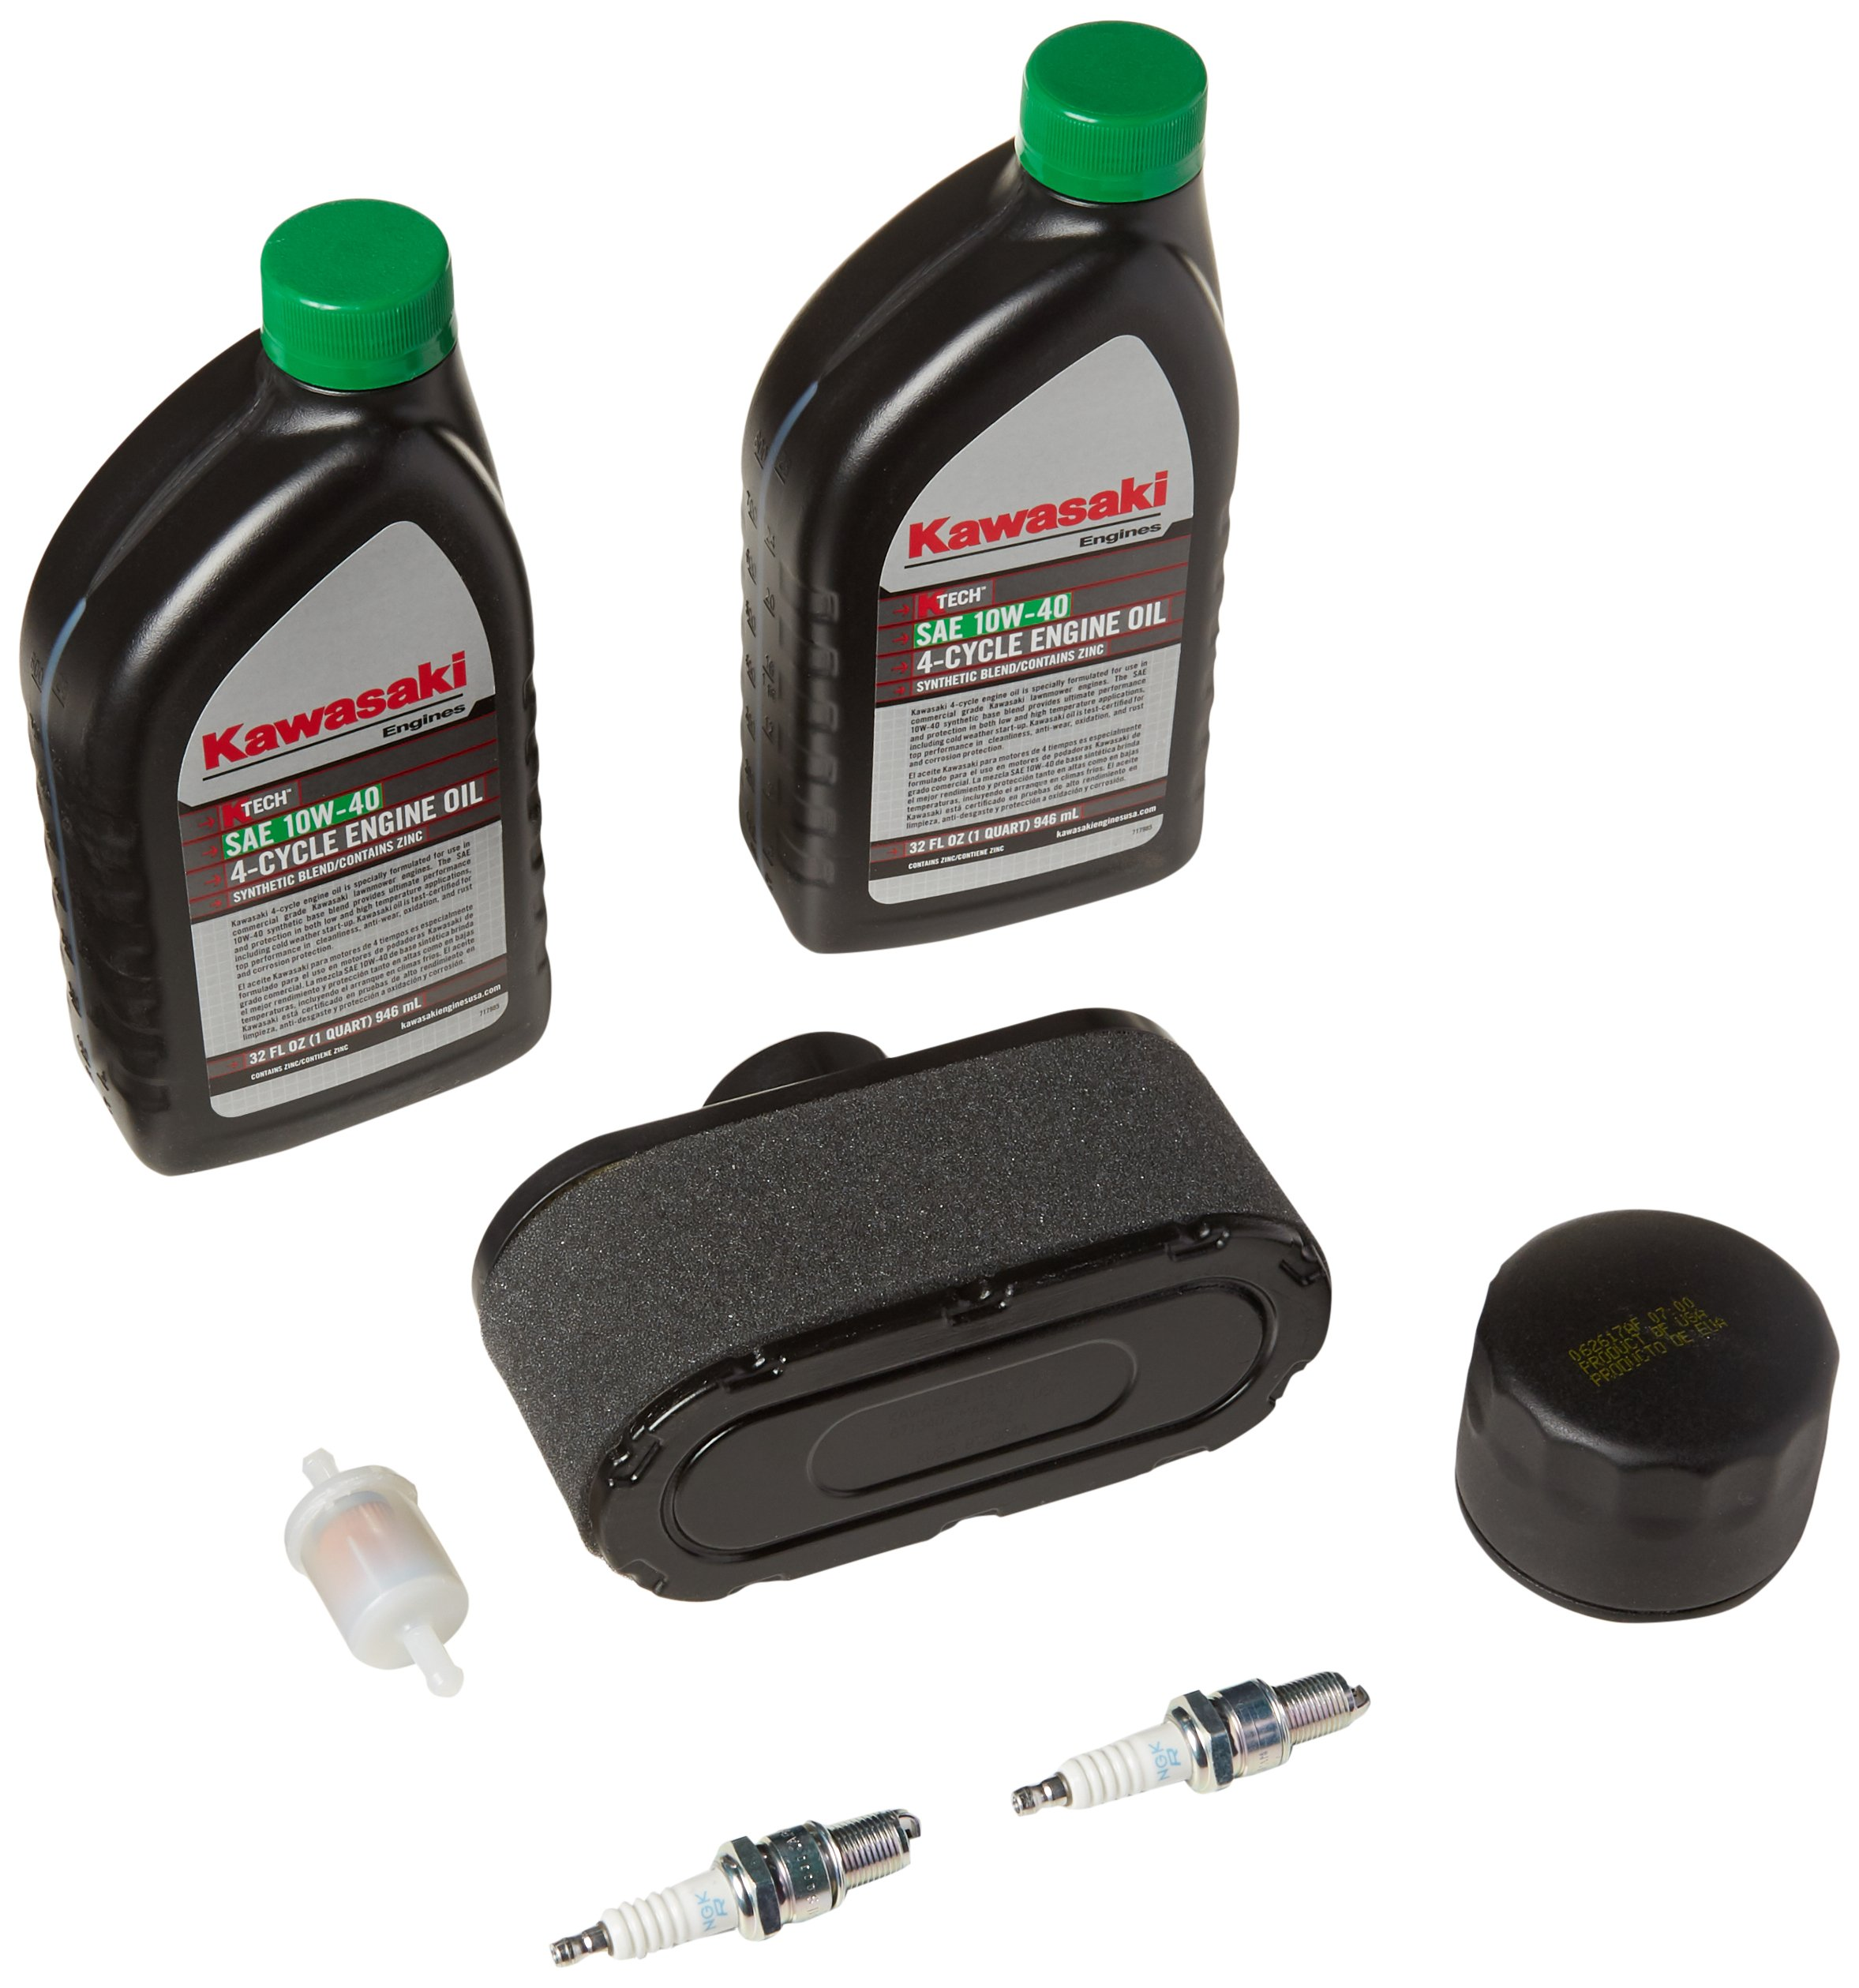 Kawasaki 99969-6425 Tune-Up Kit, Previously 99969-6372/99969-6344 by Kawasaki